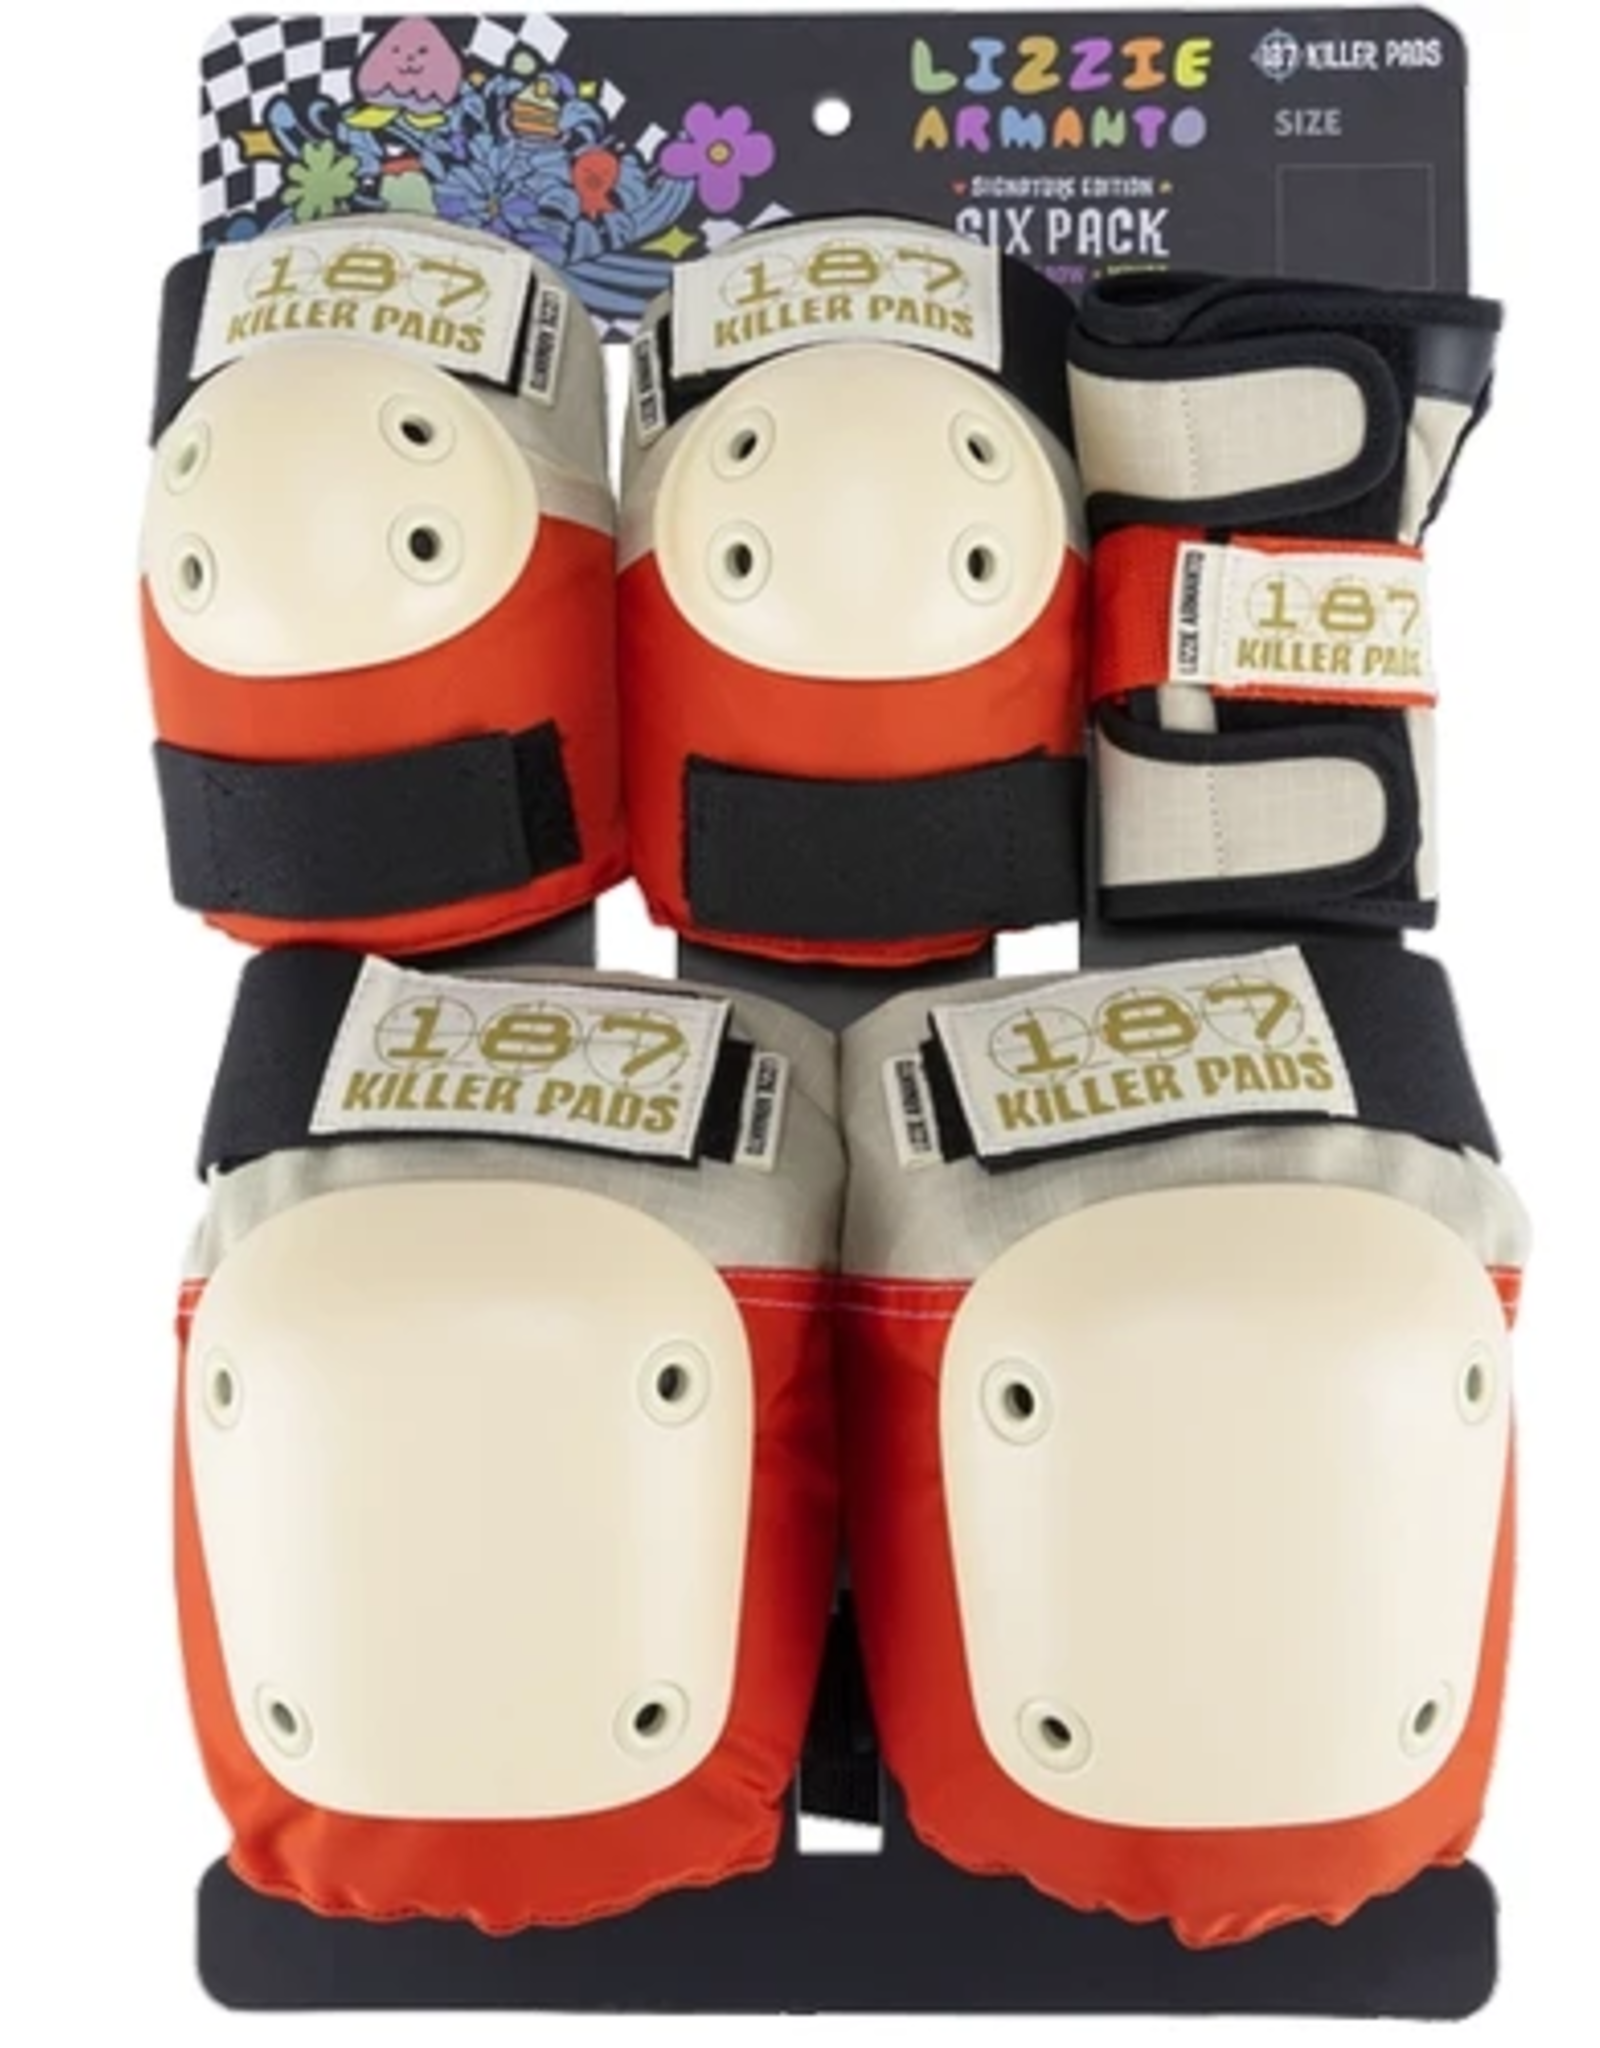 KILLER PADS LIZZIE ADULT SIX PACK GREY/RED